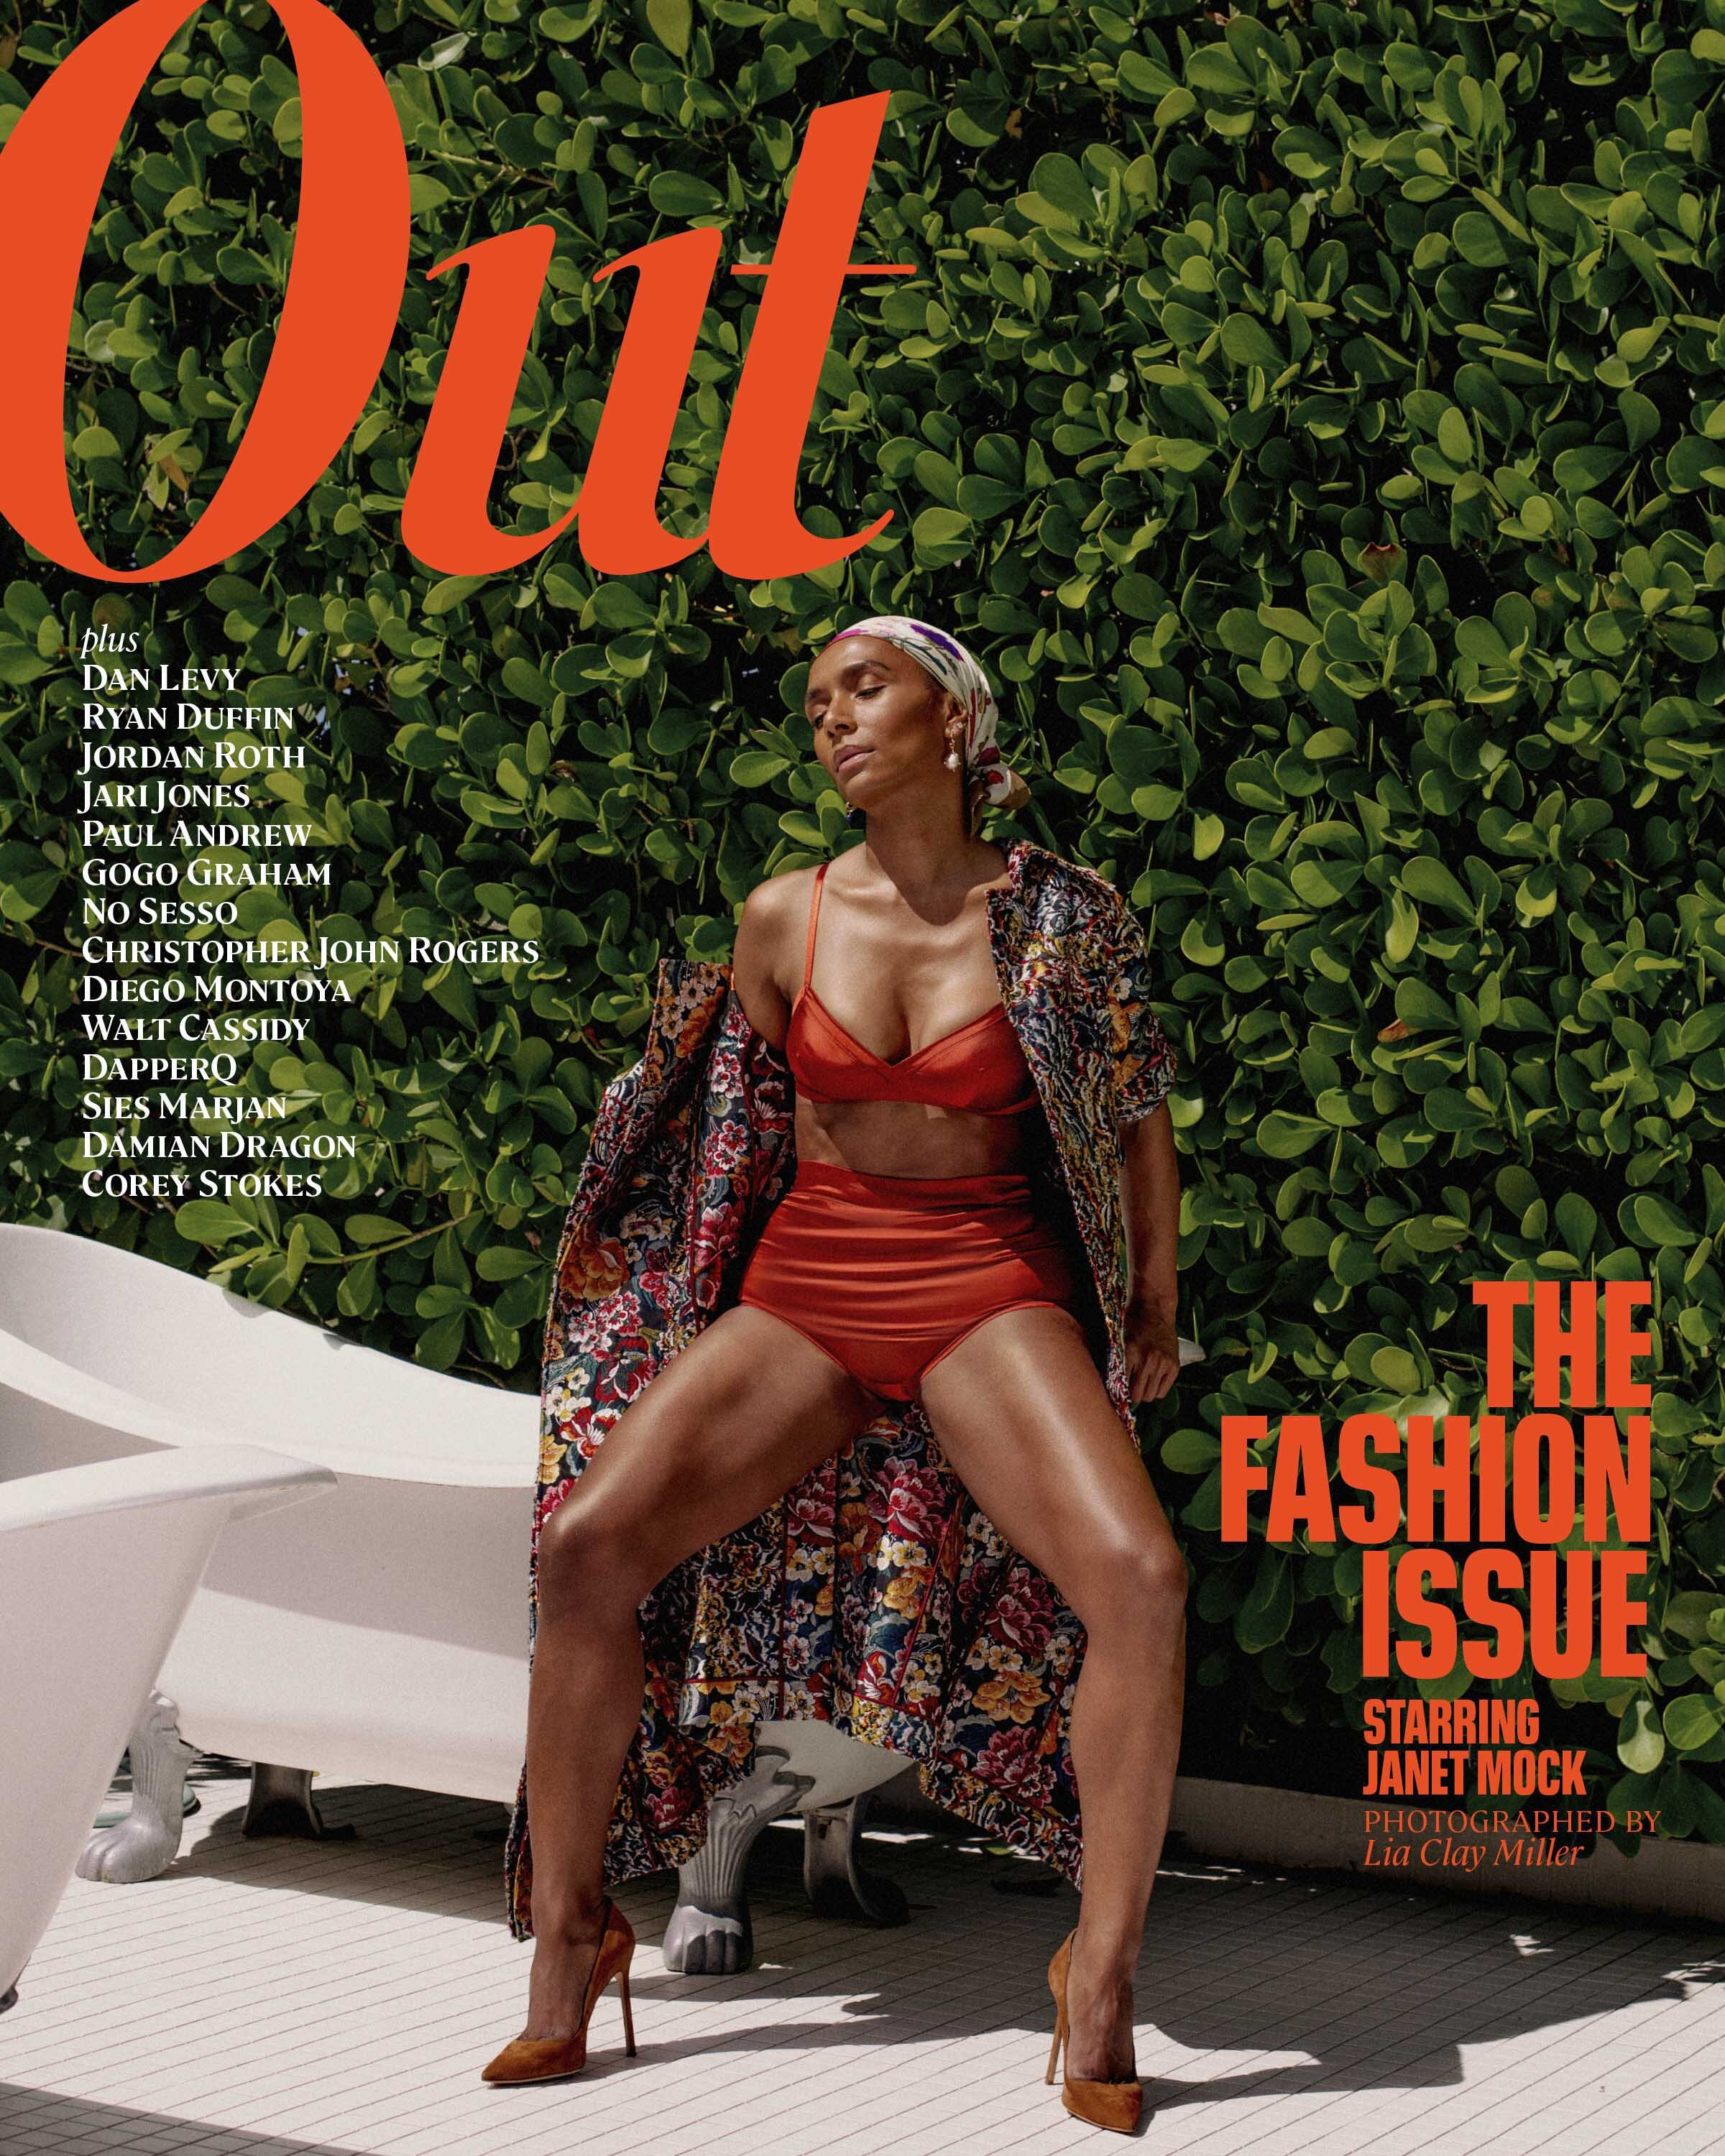 Janet Mock for the Cover of Out Magazine - The Fashion Issue